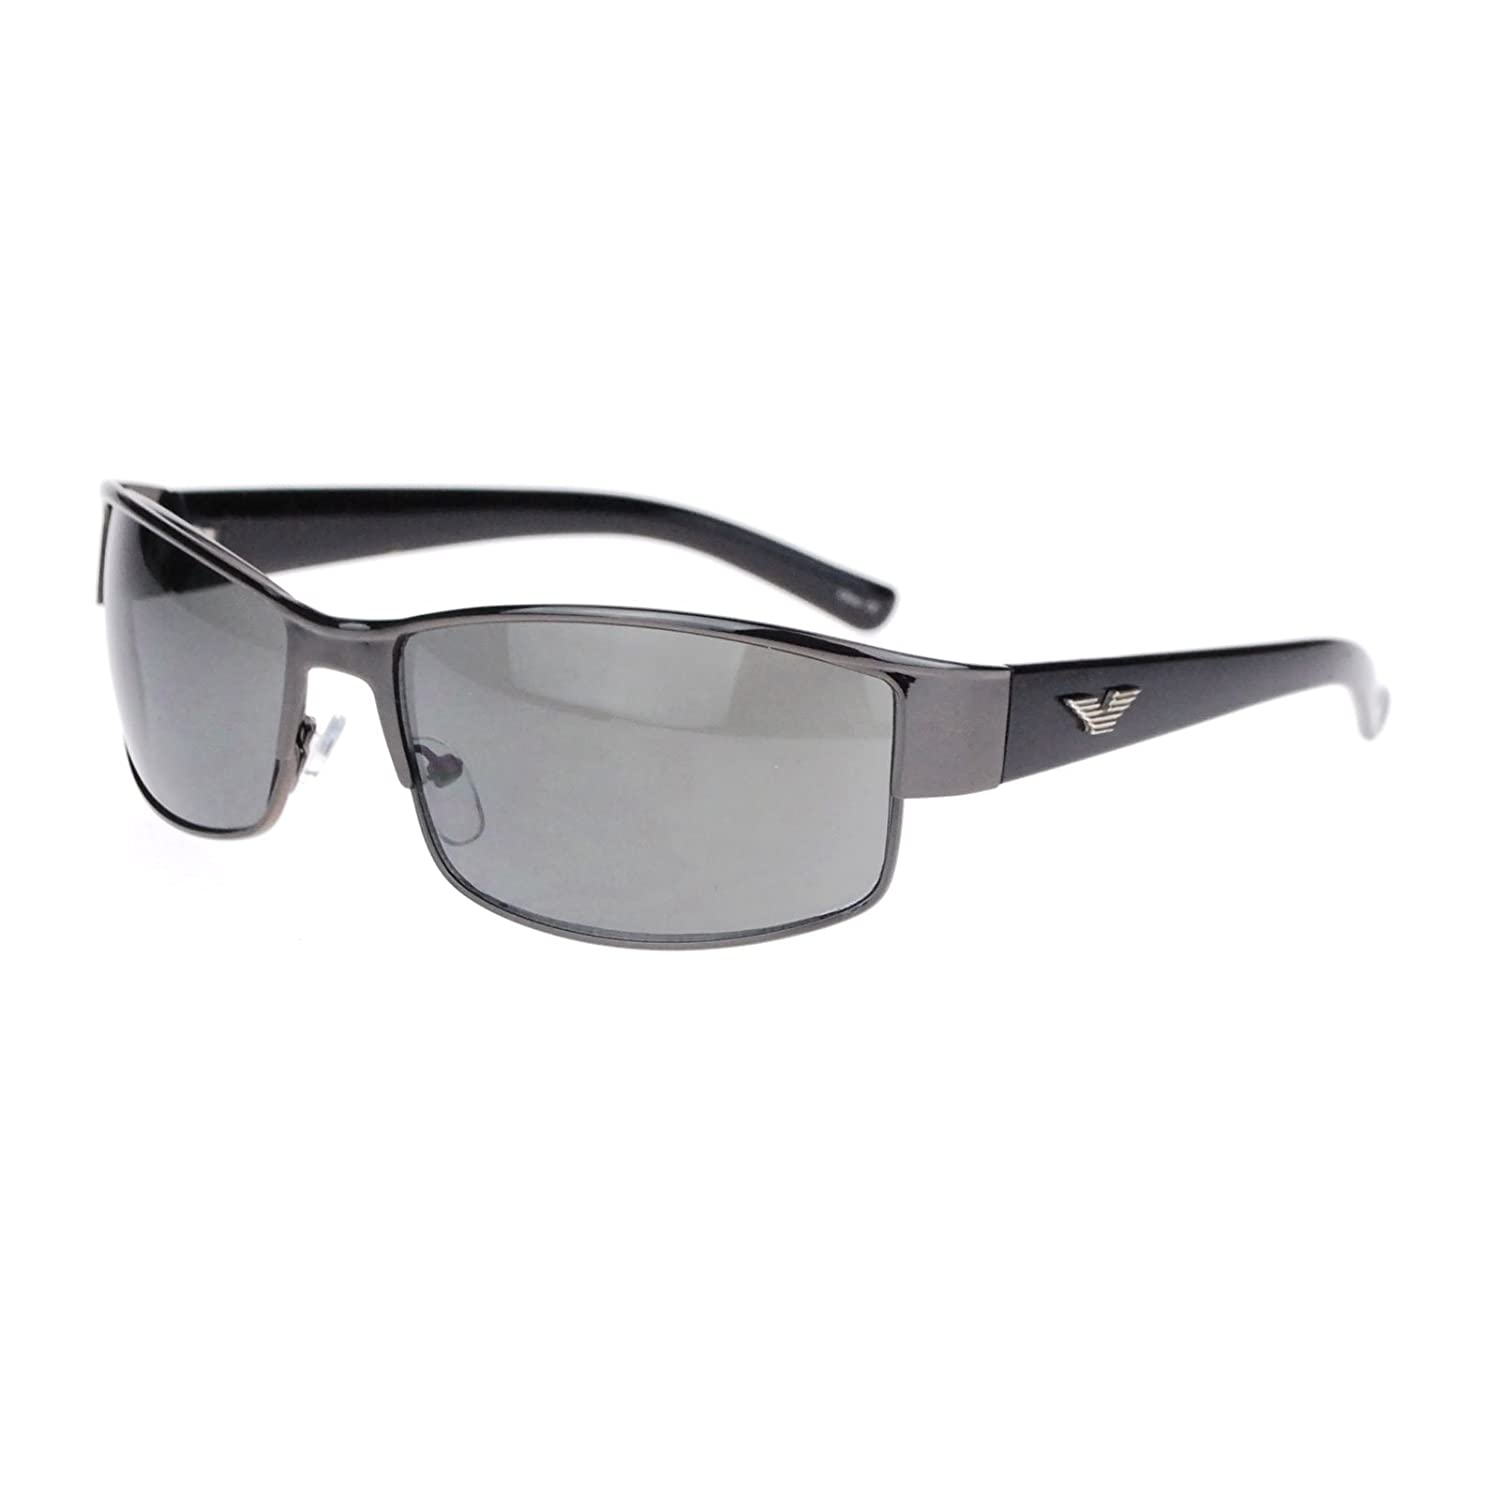 bd8364c7c48 on sale Mens Metal Designer Fashion Narrow Rectangular Luxury Agent  Sunglasses